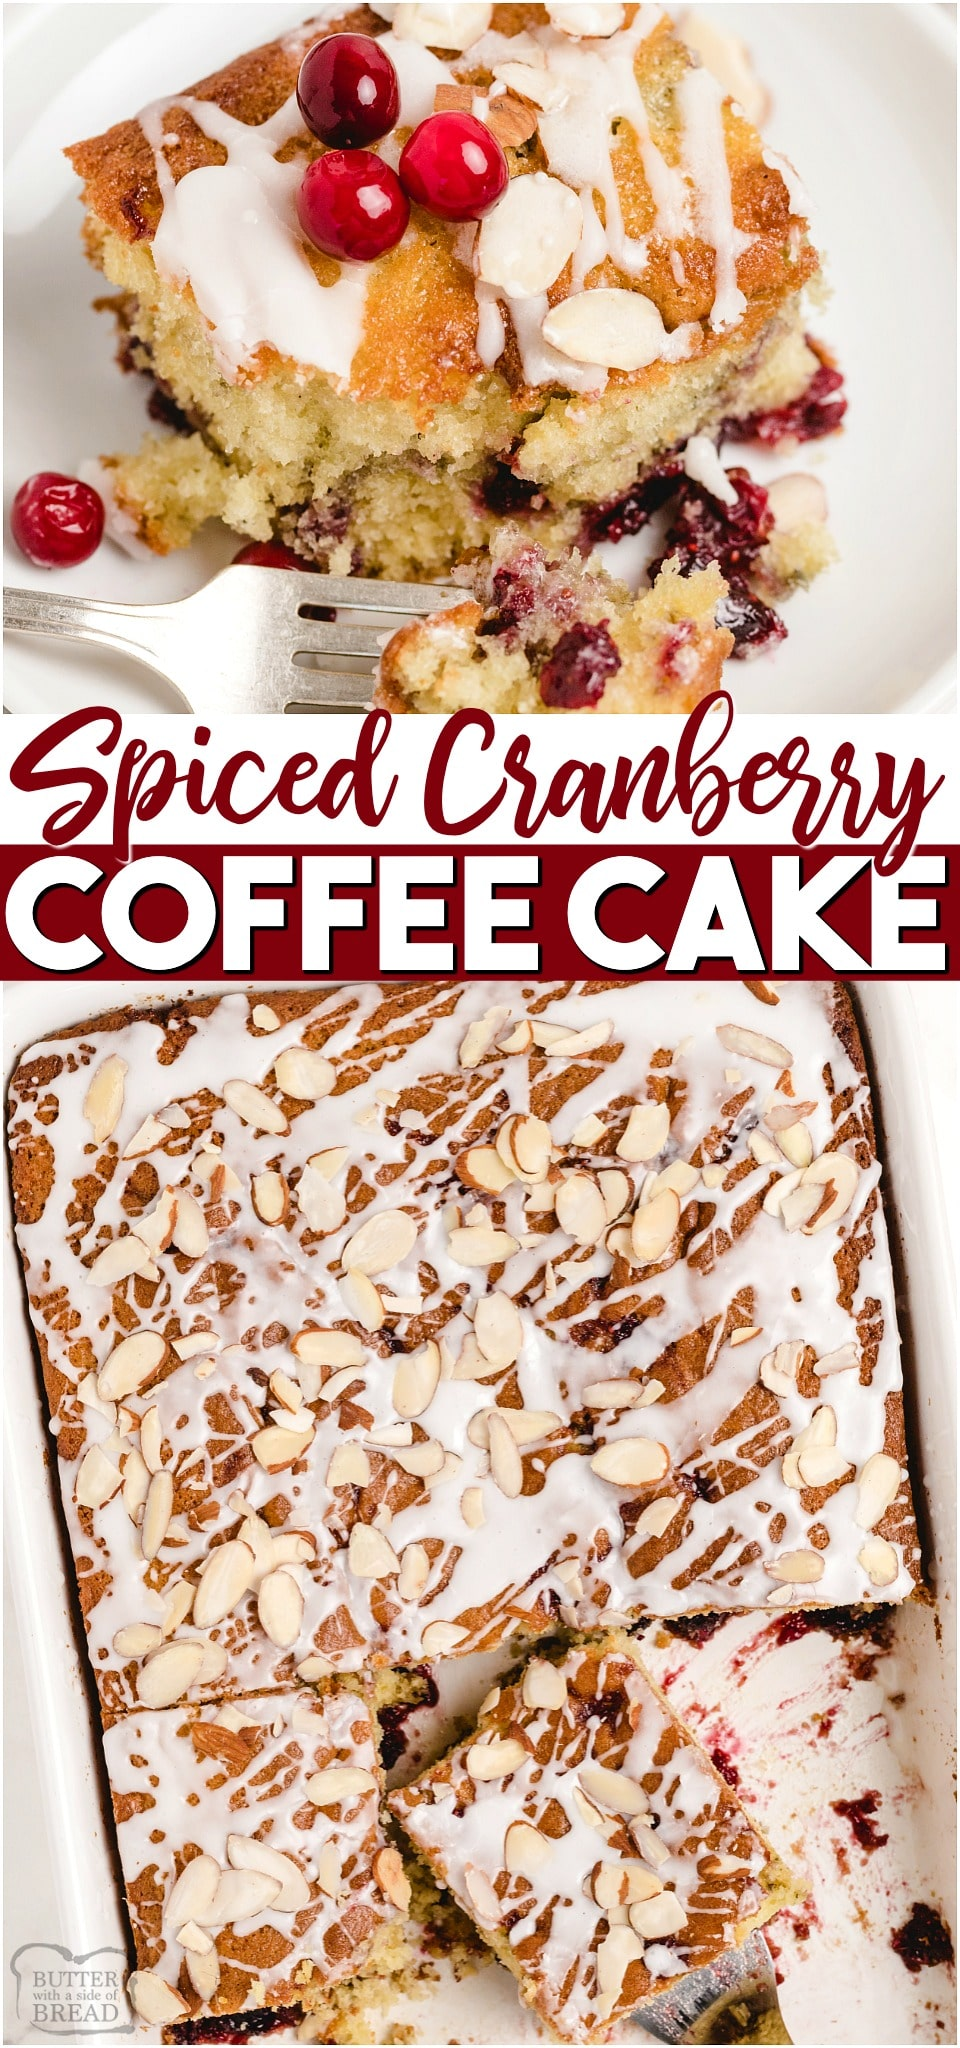 Cranberry Coffee Cake made with fresh cranberries, cinnamon, nutmeg & a simple breakfast cake batter. Perfect cranberry coffee cake recipe for holiday mornings! #cranberry #Christmas #cake #breakfast #coffeecake #easyrecipe from BUTTER WITH A SIDE OF BREAD